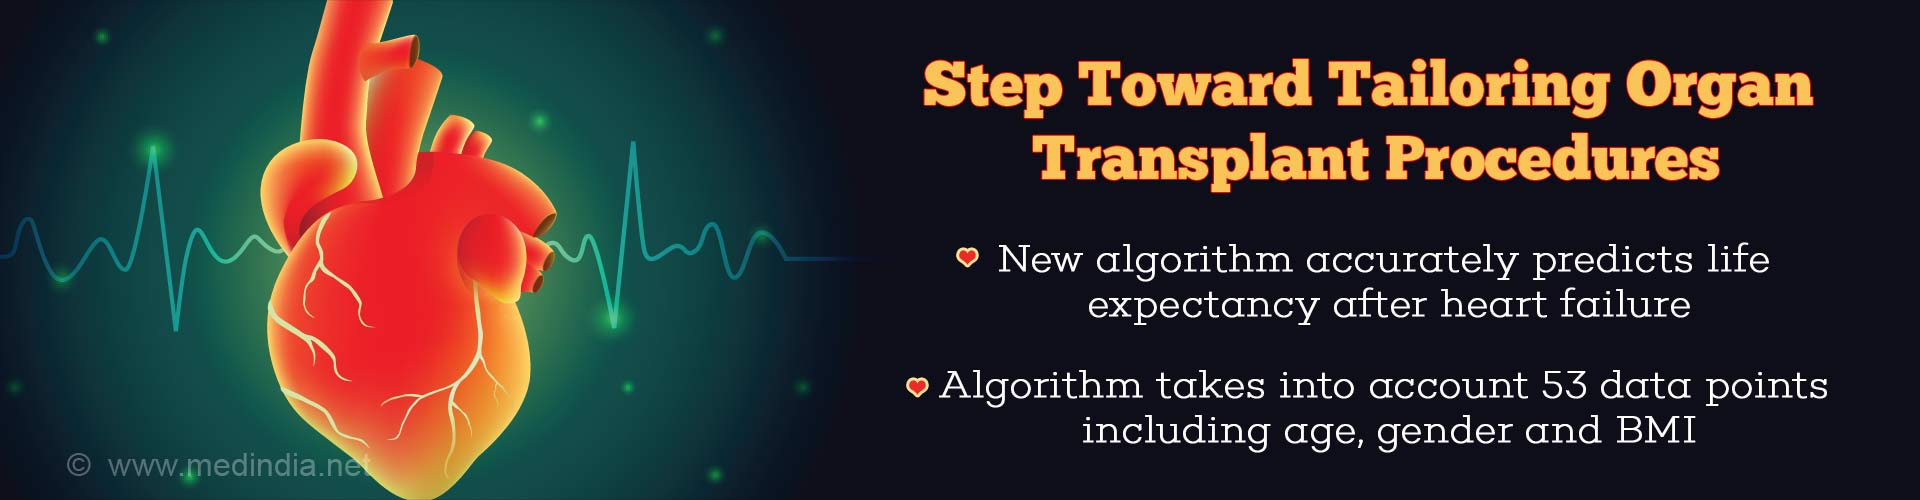 step towards tailoring organ transplant procedures